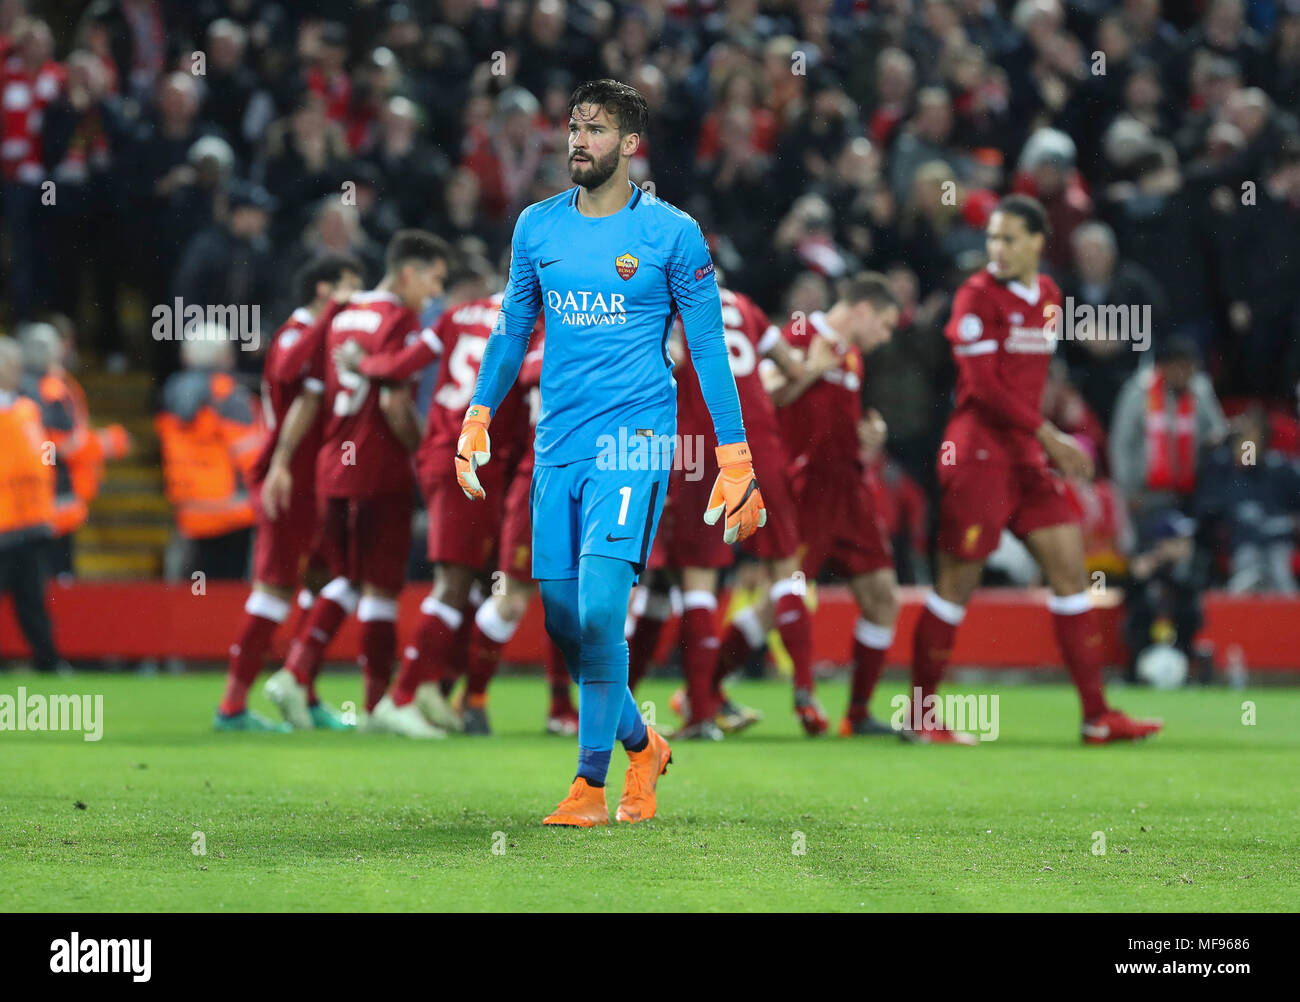 1db48d3d2 Alisson Becker Stock Photos   Alisson Becker Stock Images - Alamy